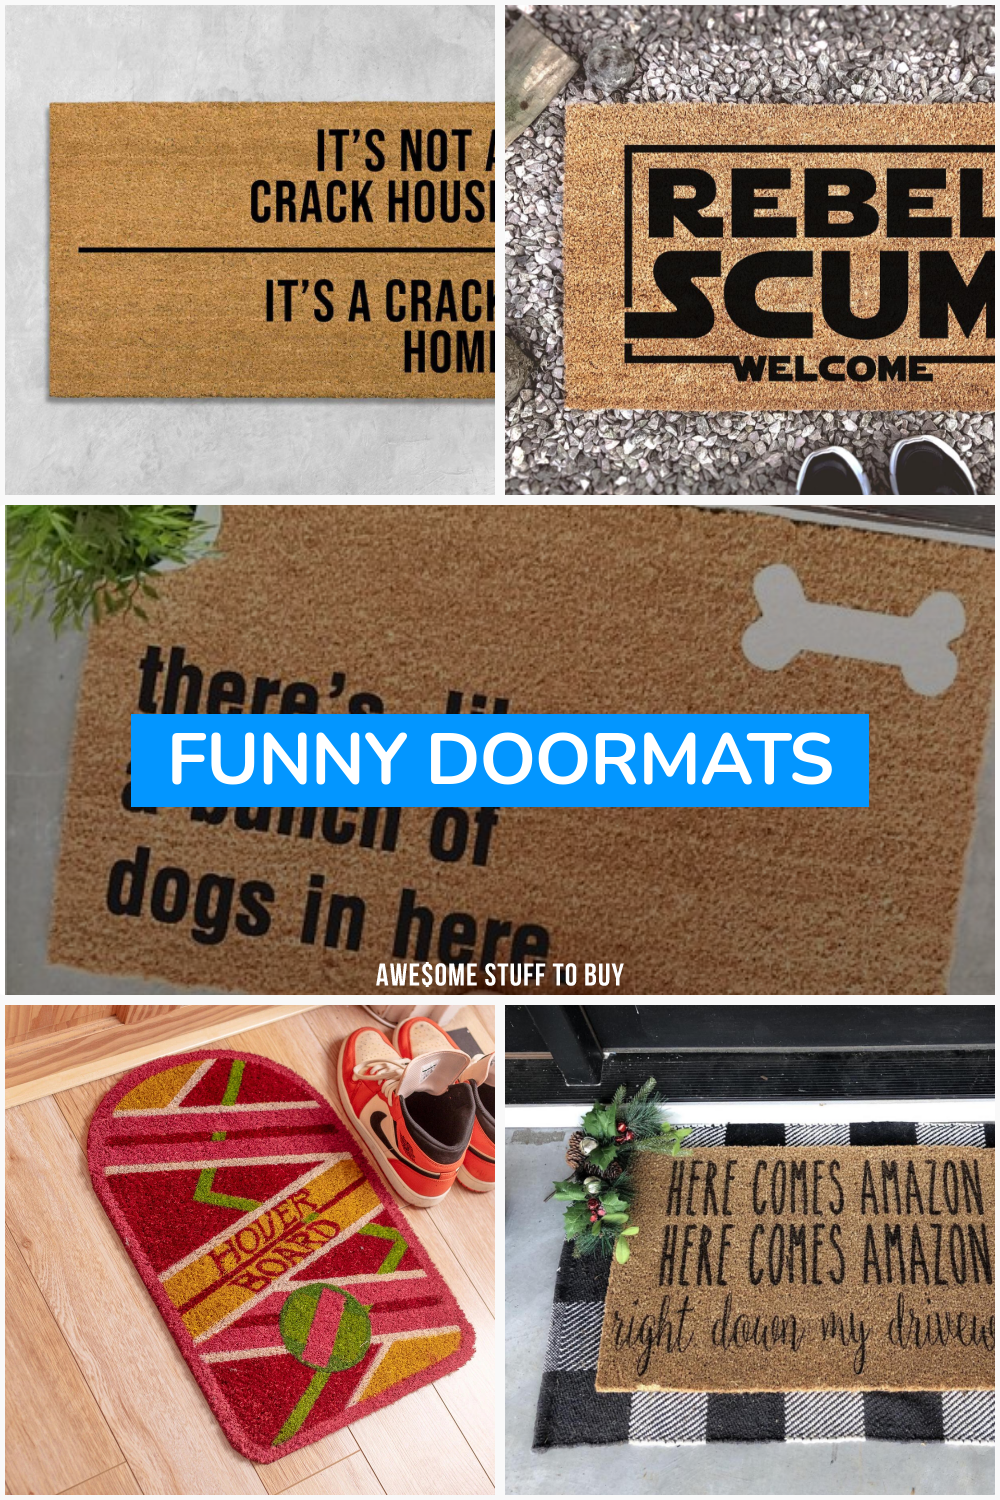 Funny Doormats // Awesome Stuff to Buy